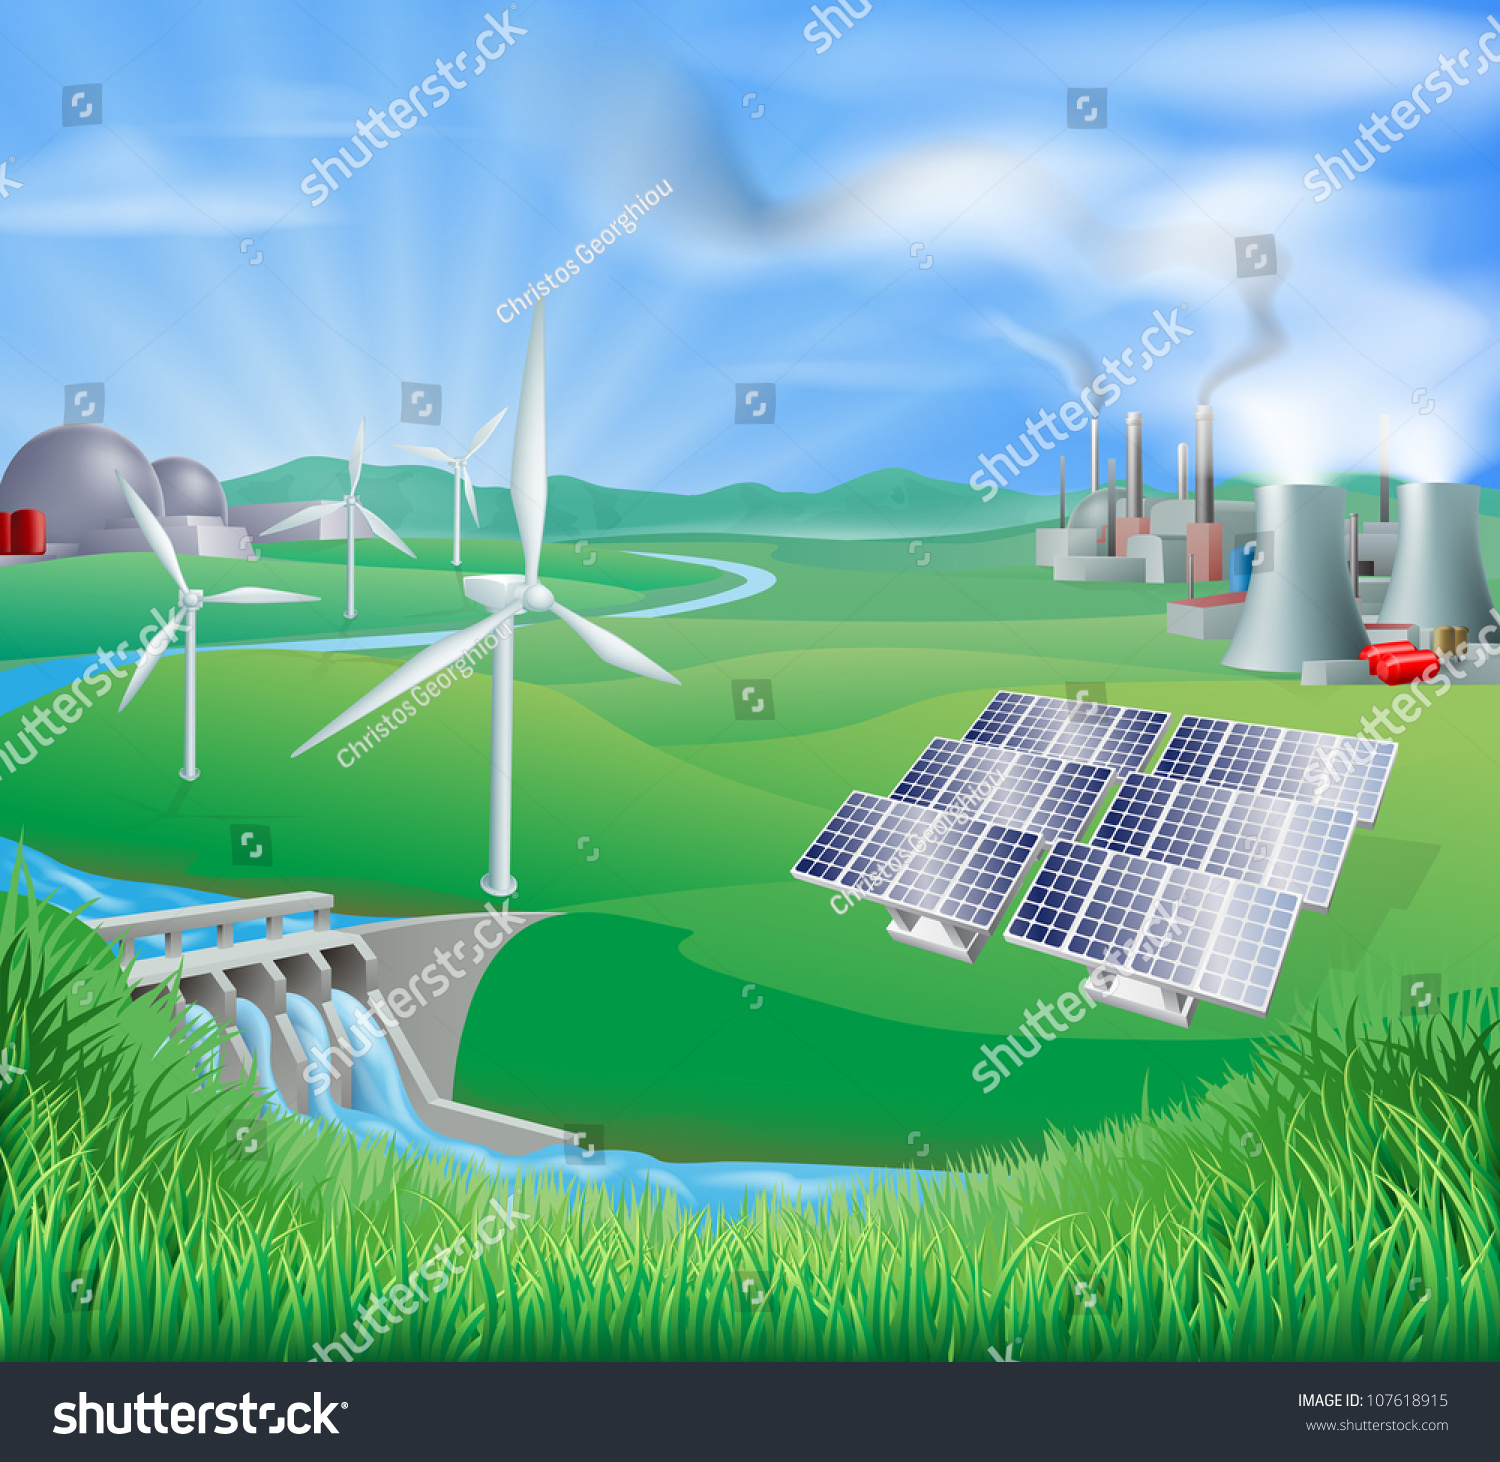 argumentative essay renewable energy And, that means that they are missing a key argument in their discussions about renewable energy fossil fuels vs renewables: the key argument that how you.